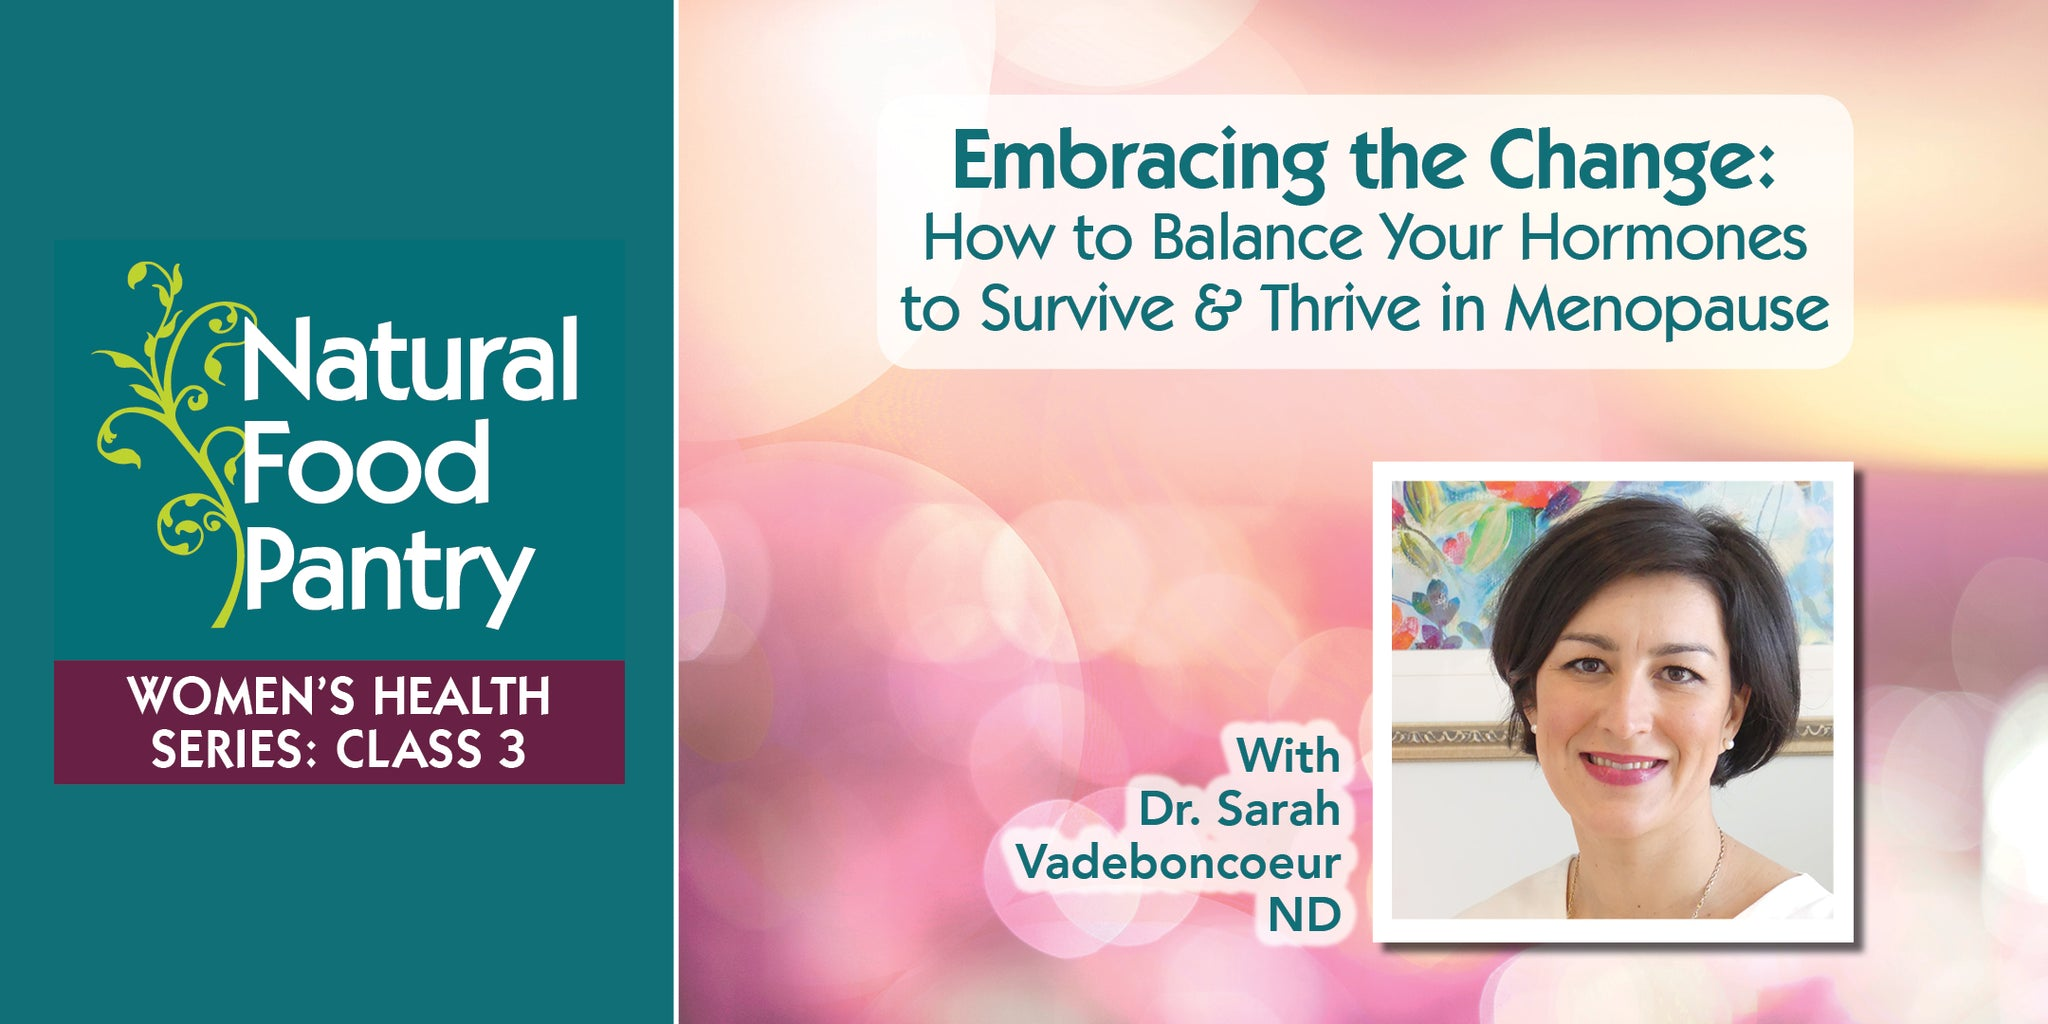 Nov 12: NFP Women's Health Series Class 3:   Embracing The Change: How to Balance Your Hormones and Survive and Thrive in Menopause